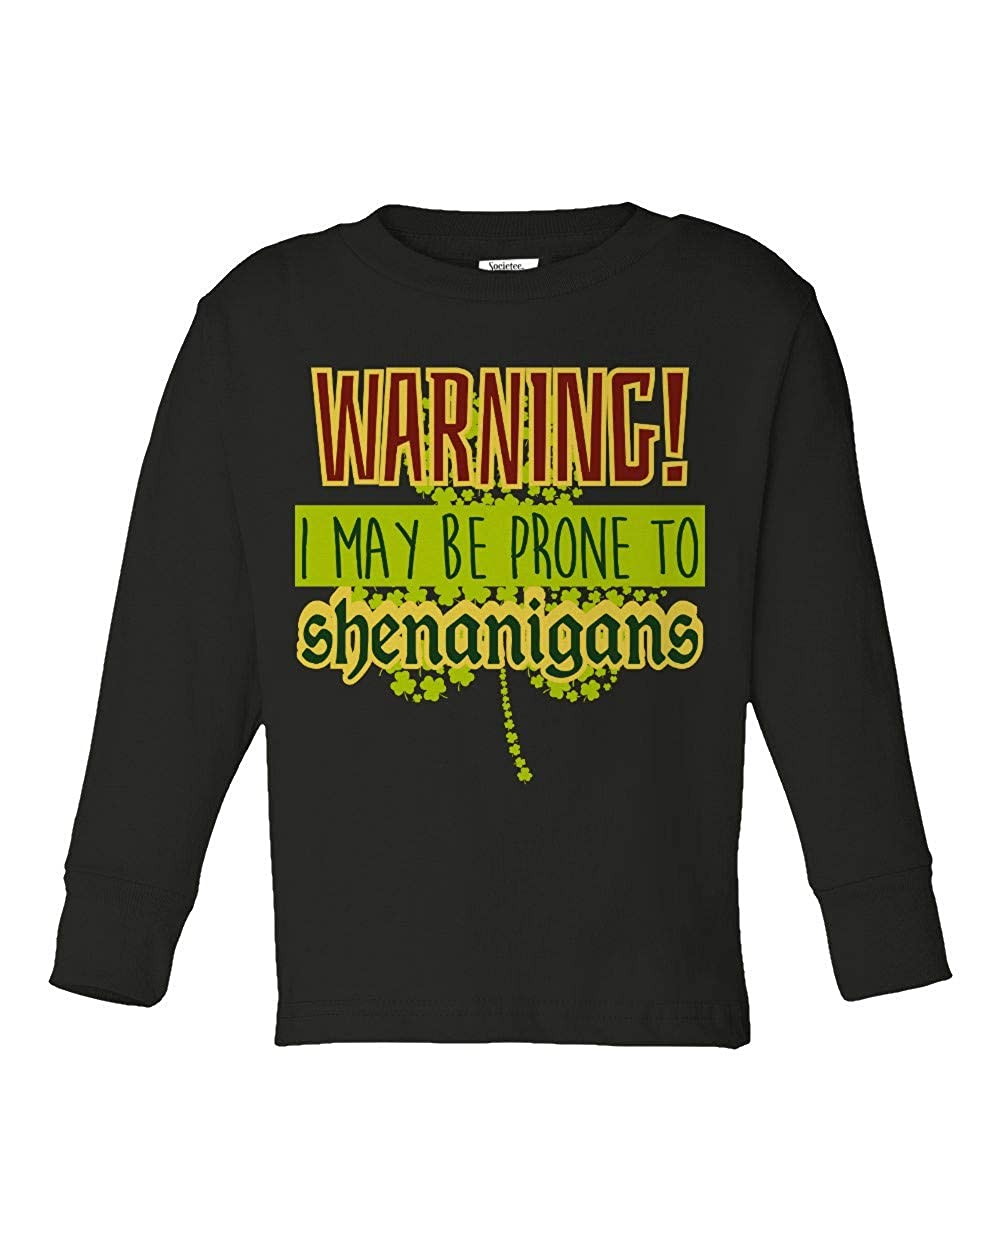 Societee May Be Prone to Shenanigans Girls Boys Toddler Long Sleeve T-Shirt